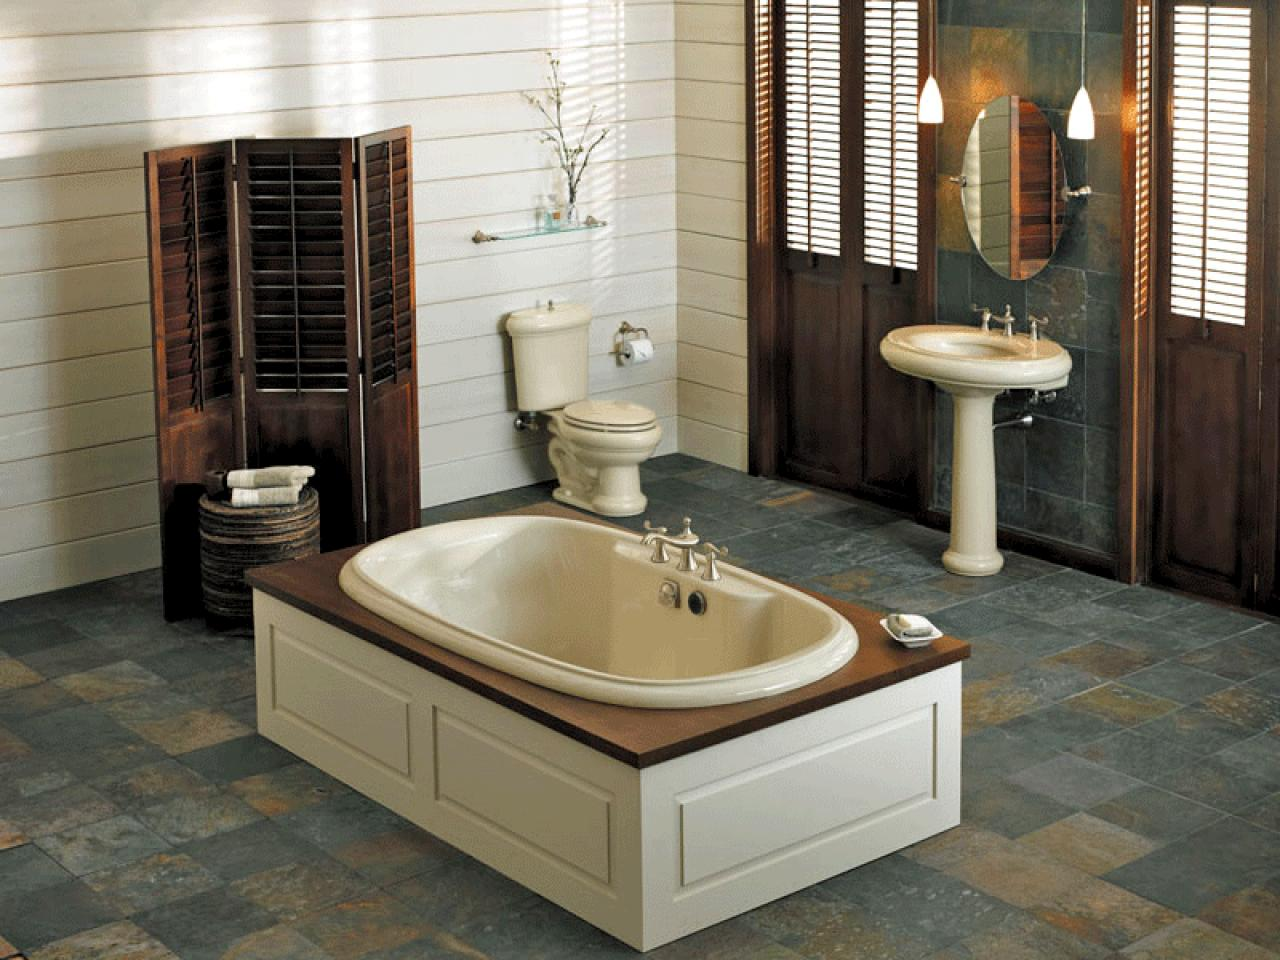 Divine Bathroom Wall Ideas also Tub Plus Wooden Divider Near Toilet